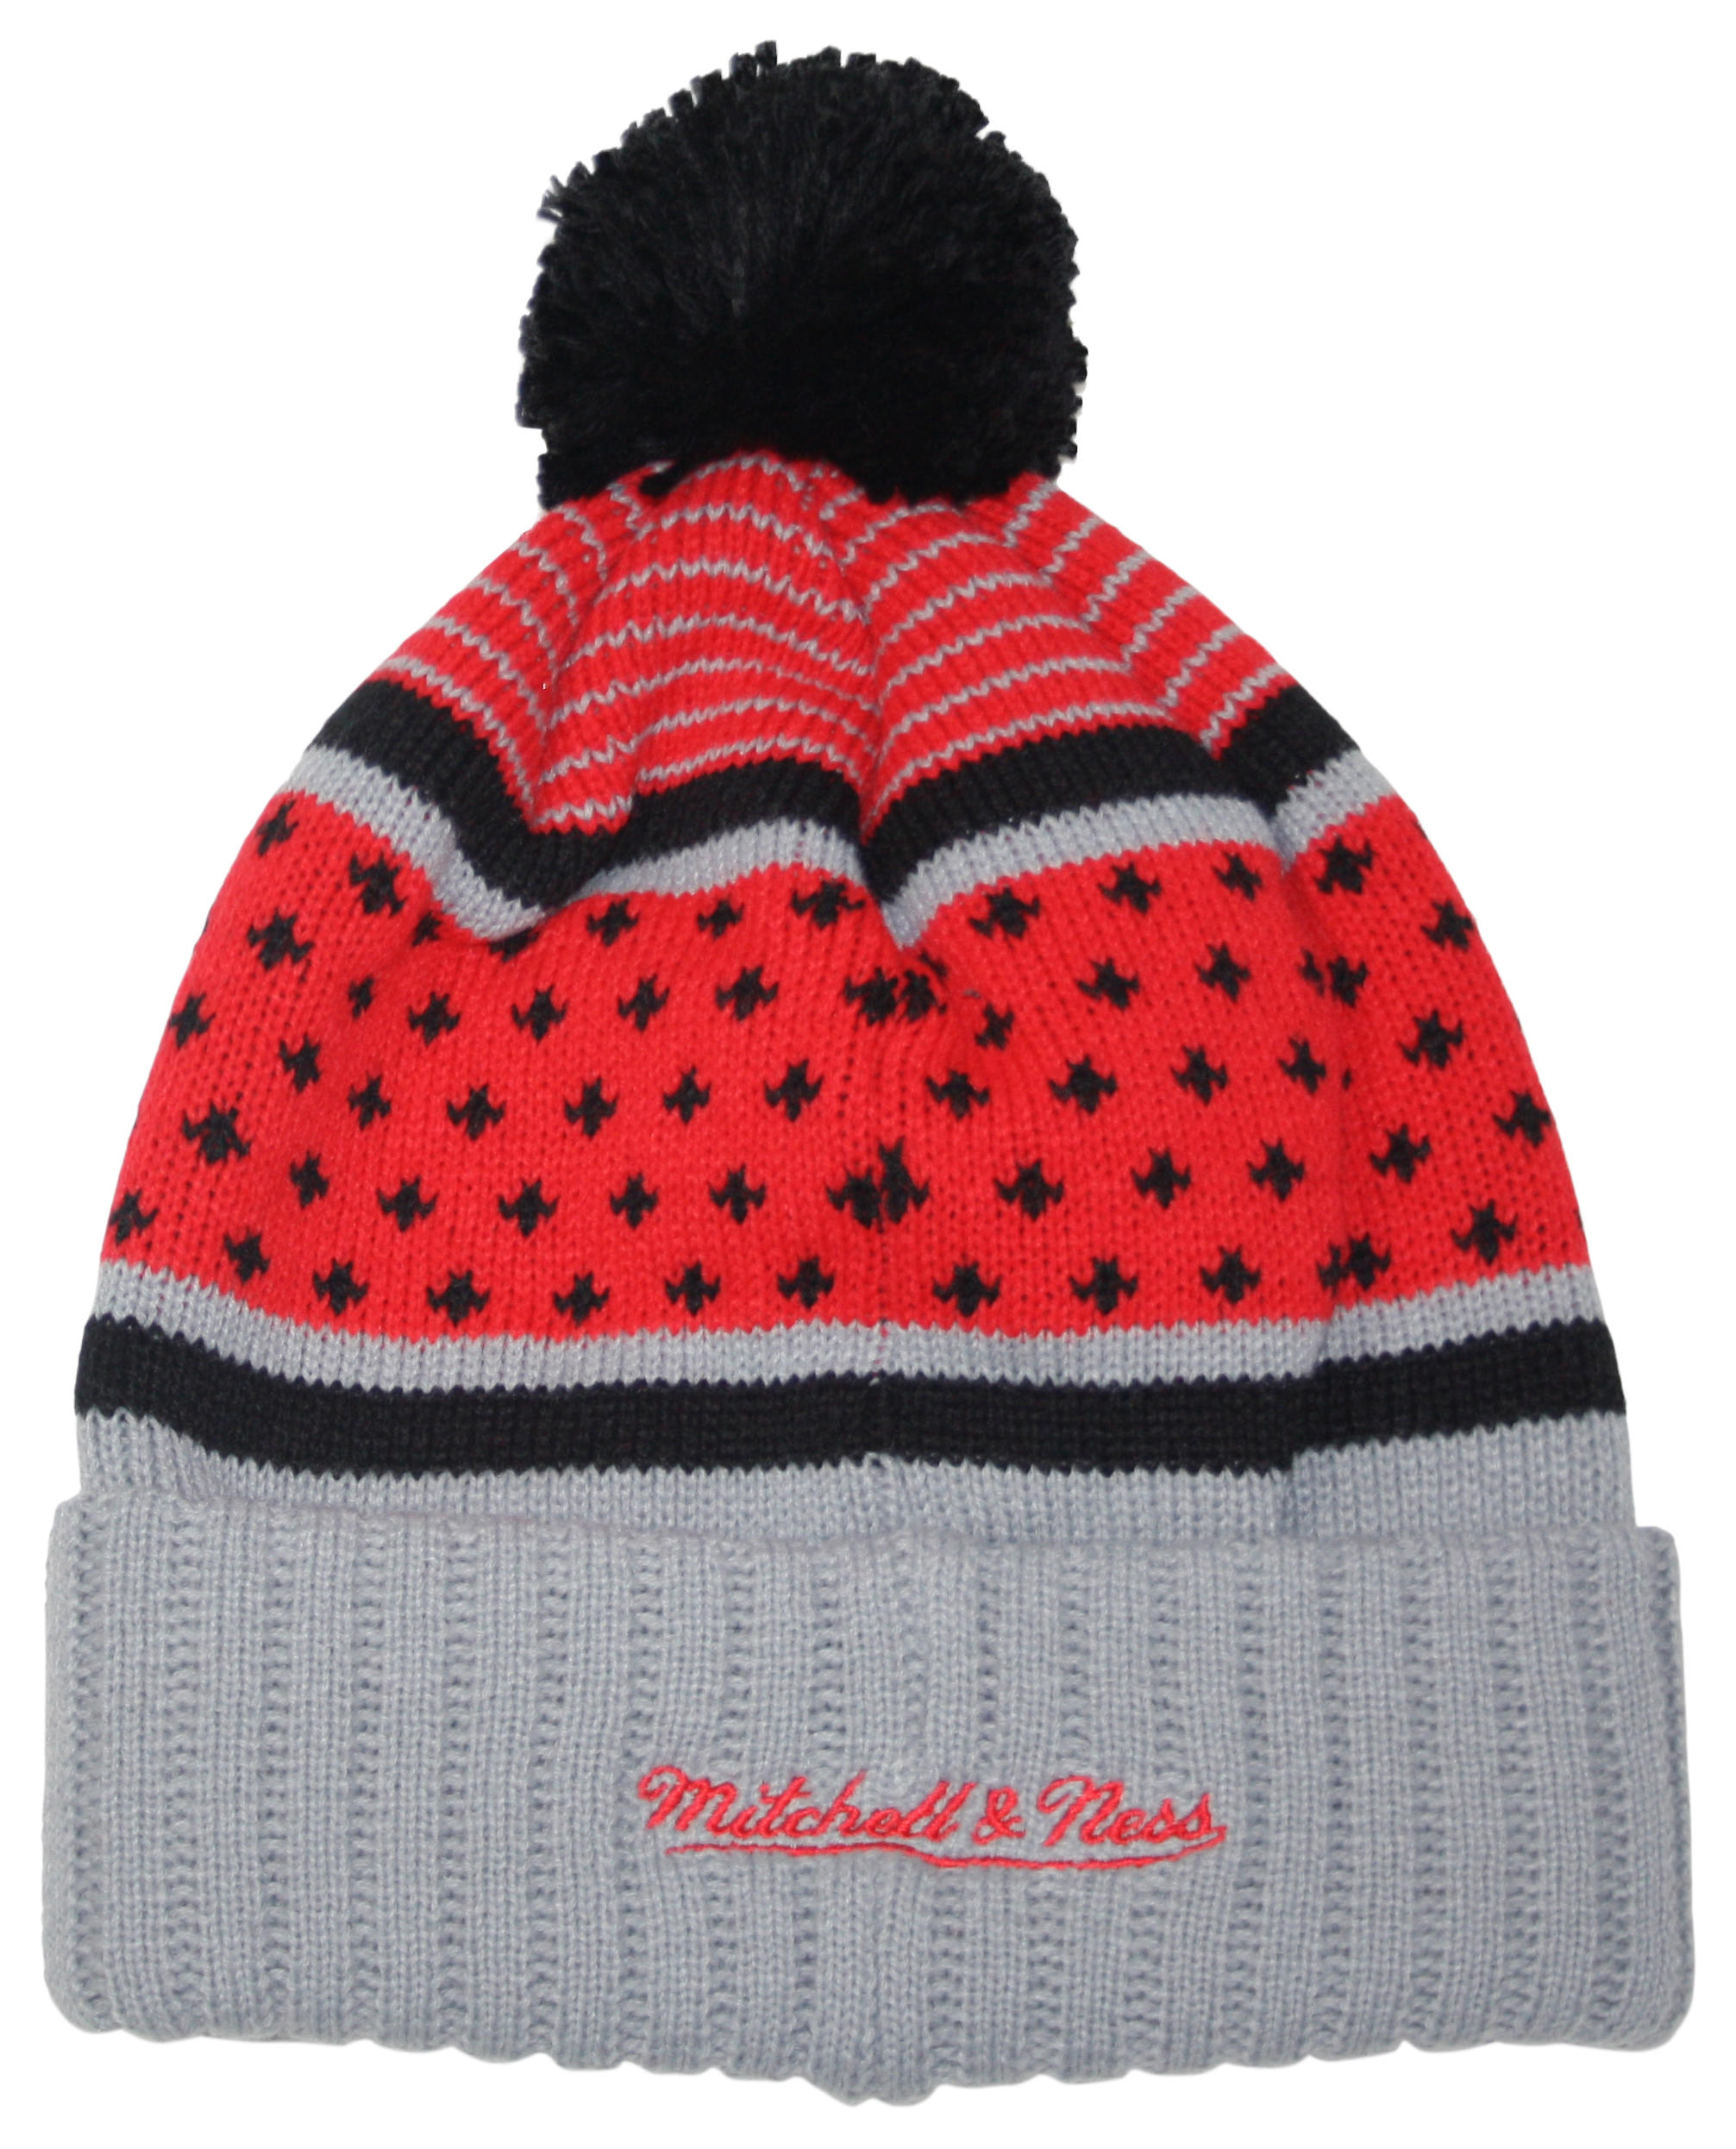 648c8b84a The Highlands Cuffed Pom Beanie Toronto Raptors